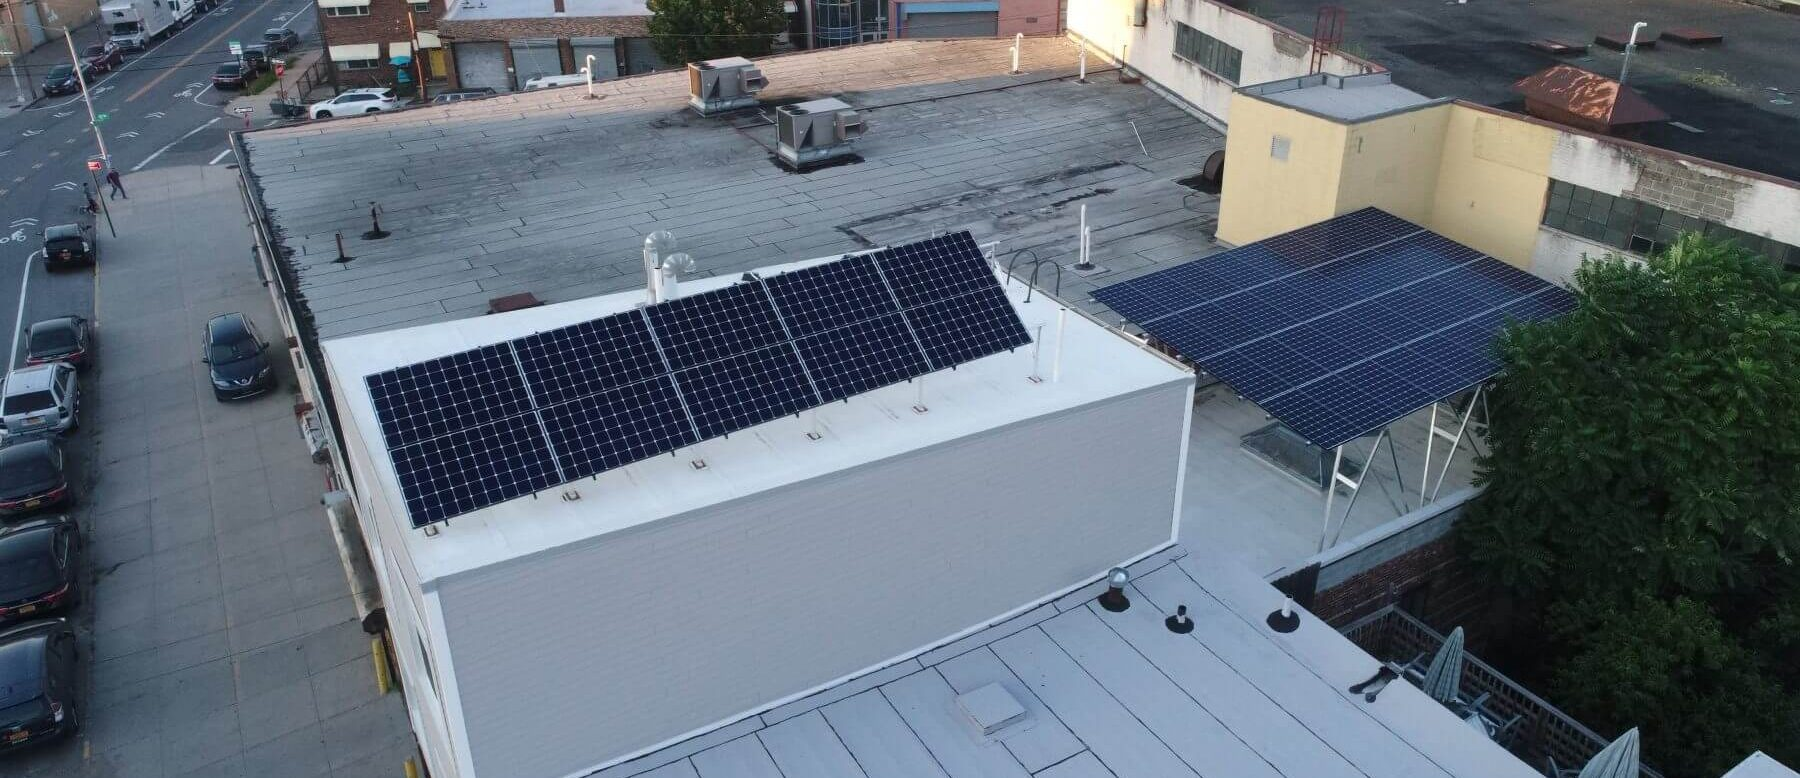 A hybrid tilt and canopy solar system installed on Workforce Housing Group's headquarters in Long Island City.